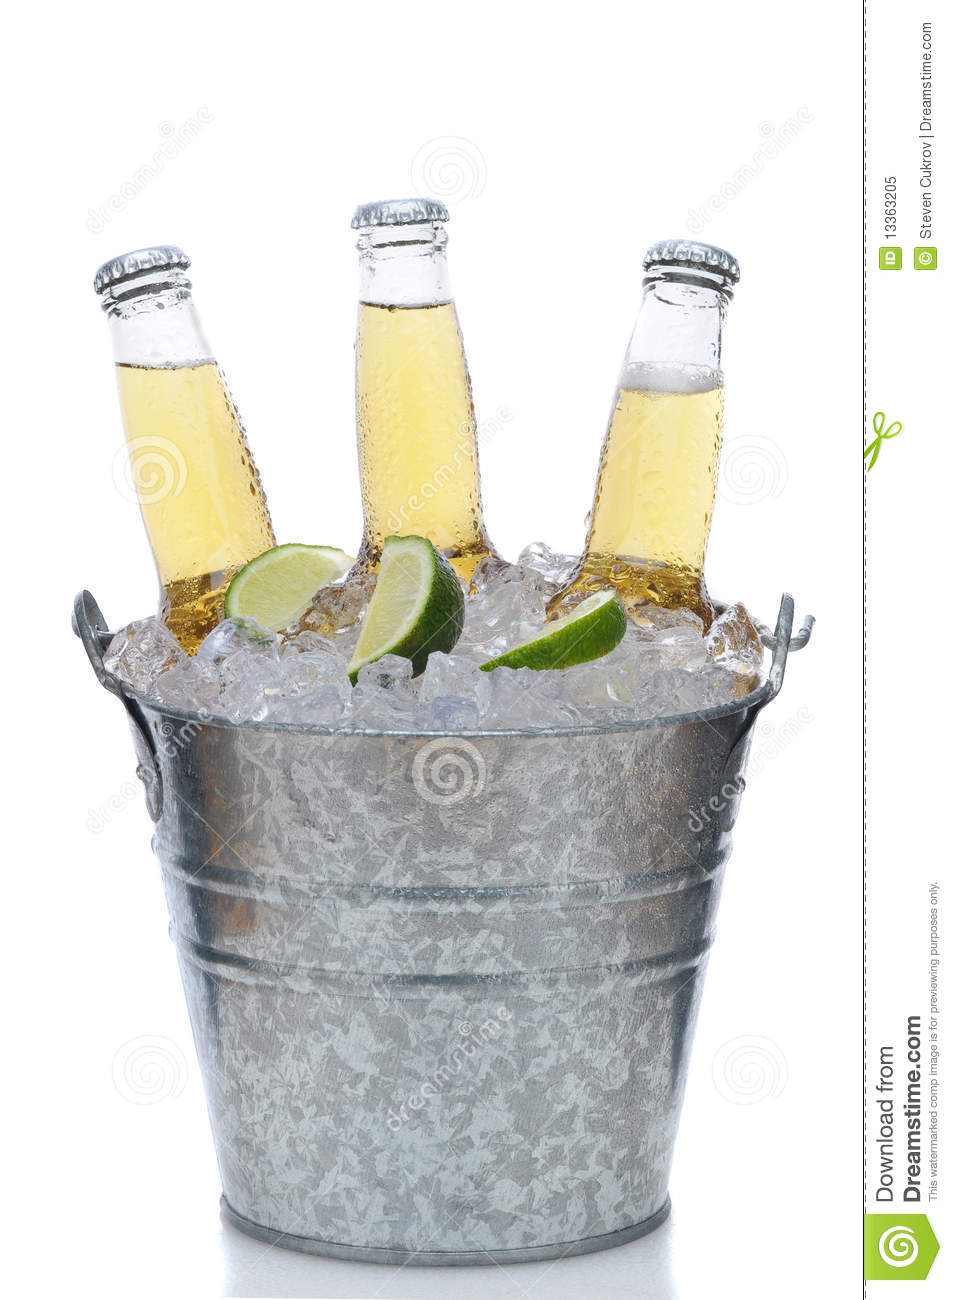 Three Clear Beer Bottles In Ice Bucket Royalty Free Stock